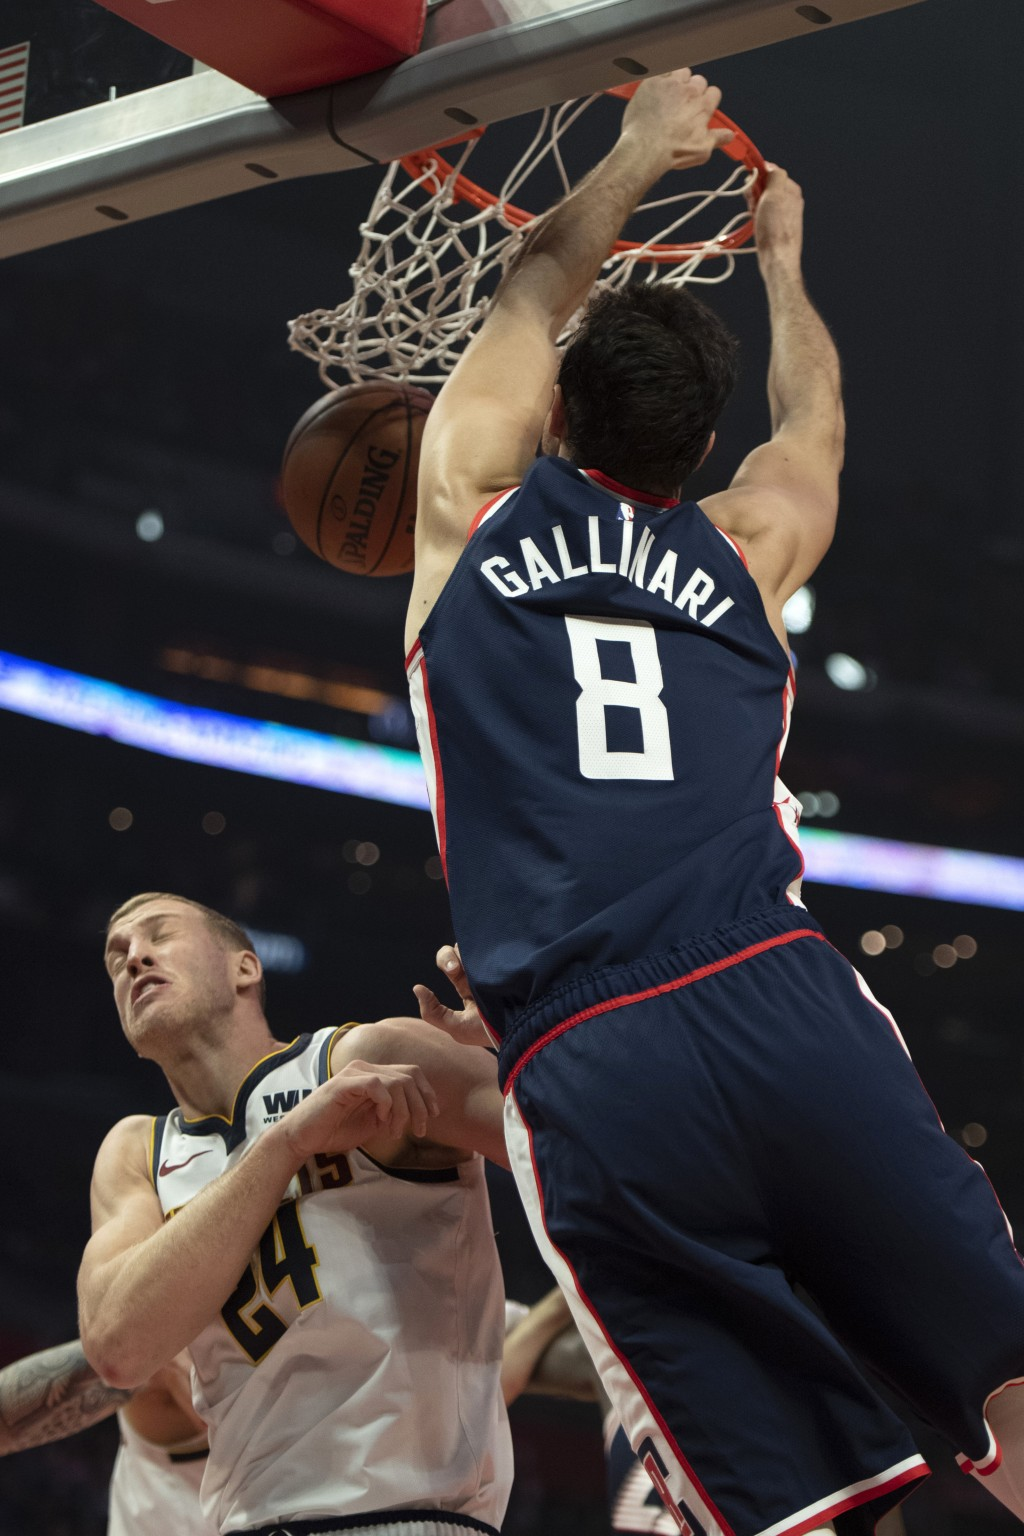 Los Angeles Clippers forward Danilo Gallinari, right, dunks over Denver Nuggets forward Mason Plumlee during the first half of an NBA basketball game ...